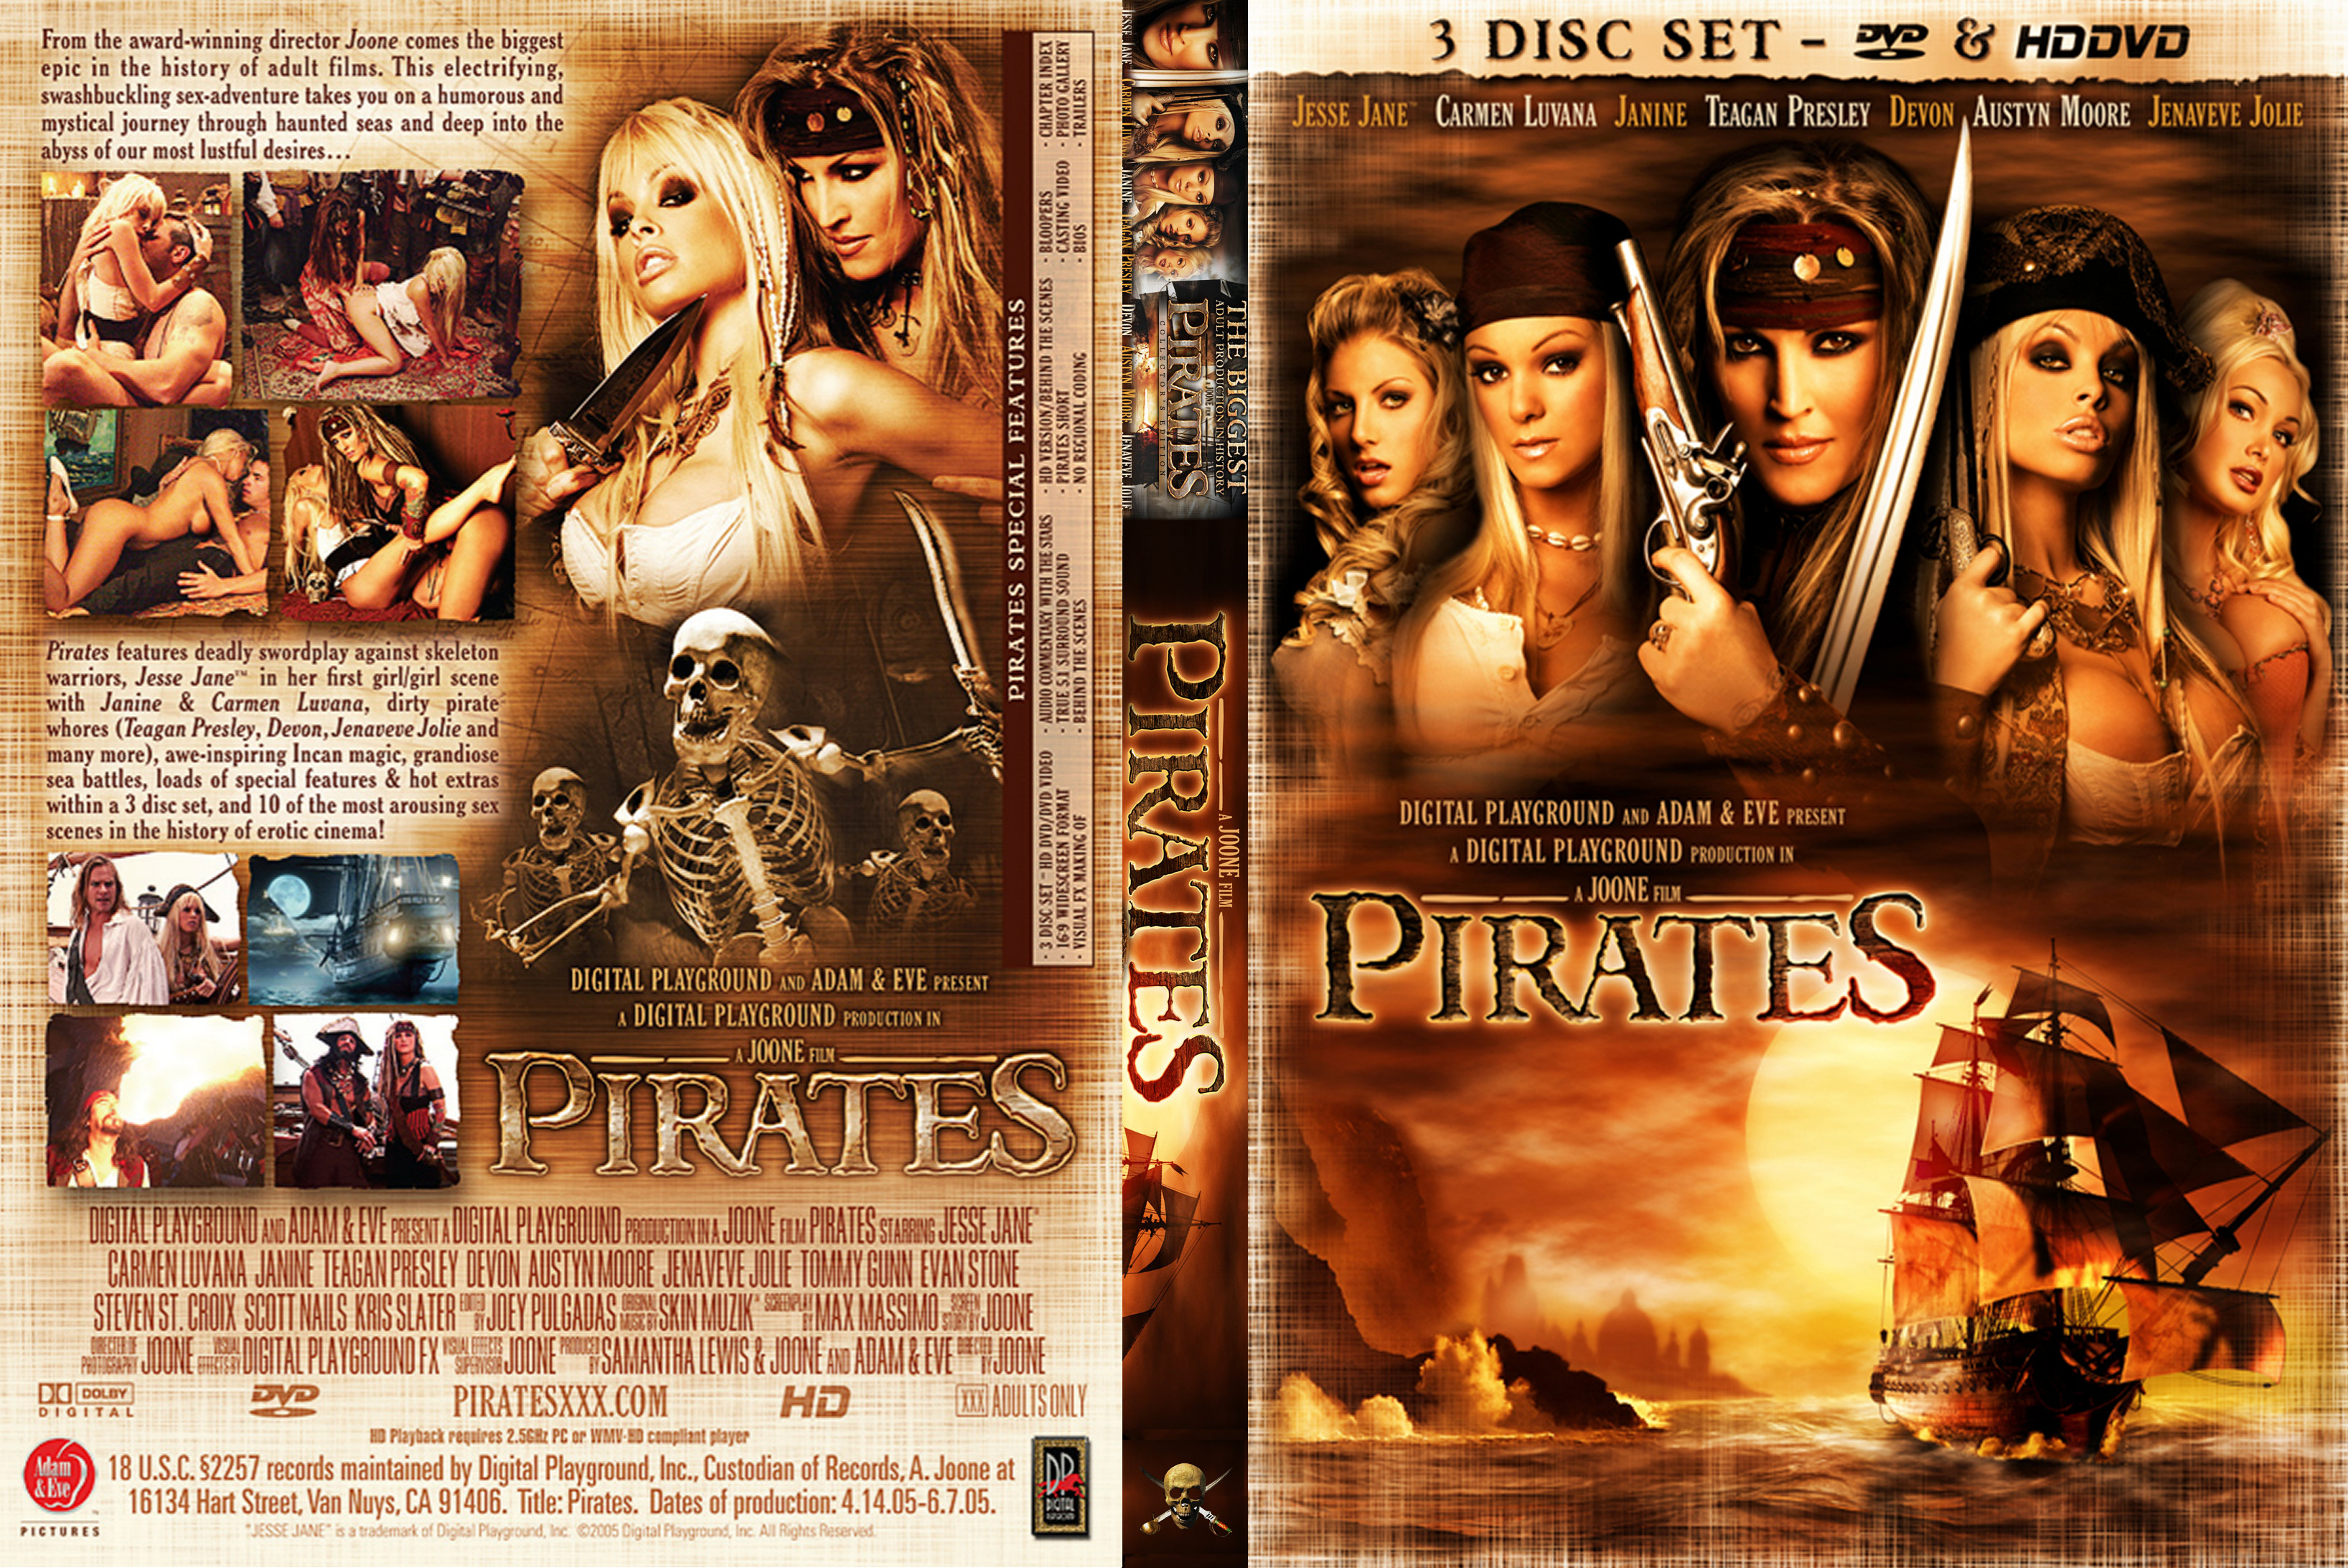 Pirates movie sex scene exposed movies